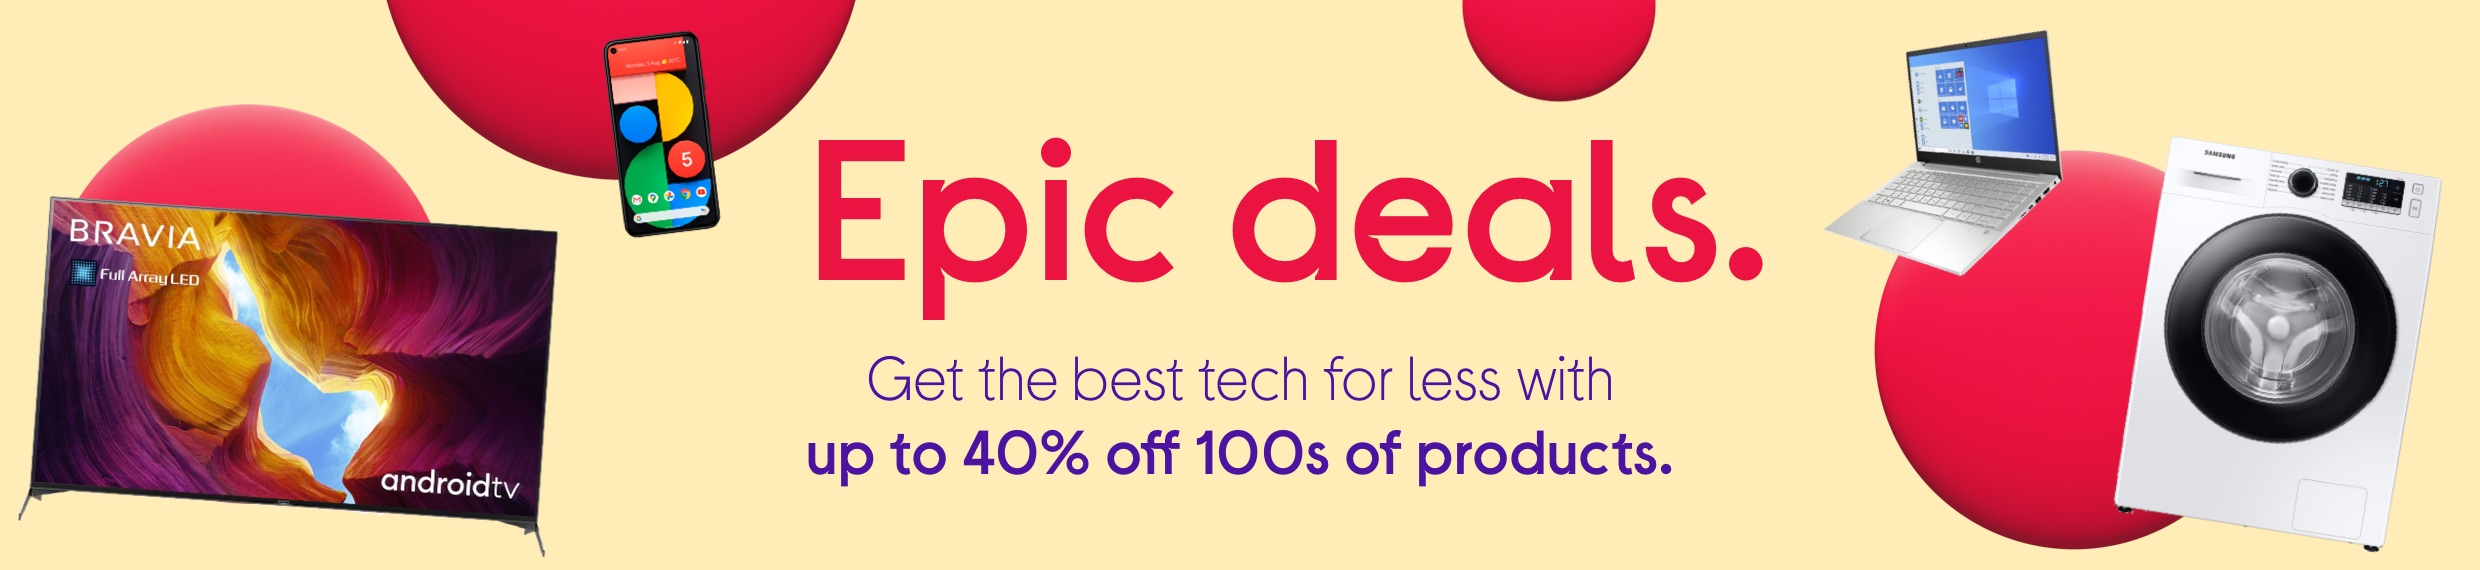 Epic deals. Save up tp 40% on 100s of products.